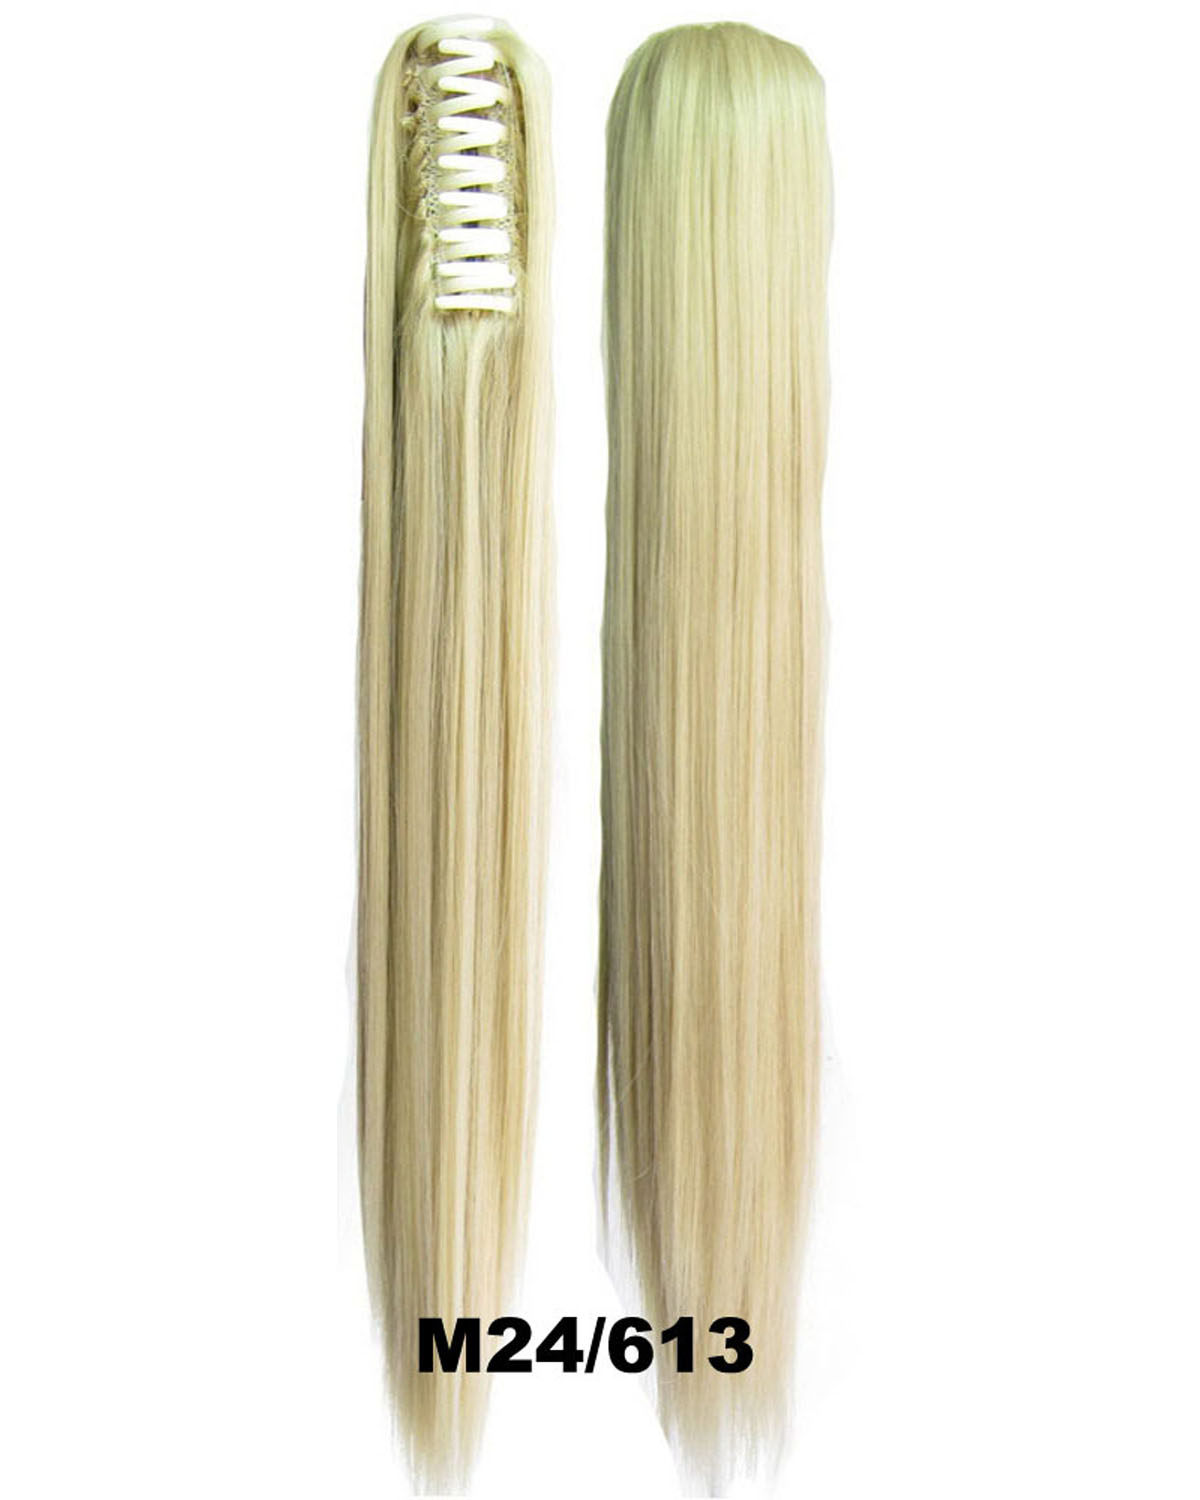 22 Inch Lady Great Straight and Long Claw Chip Synthetic Hair Ponytail M24/613 Good Quality